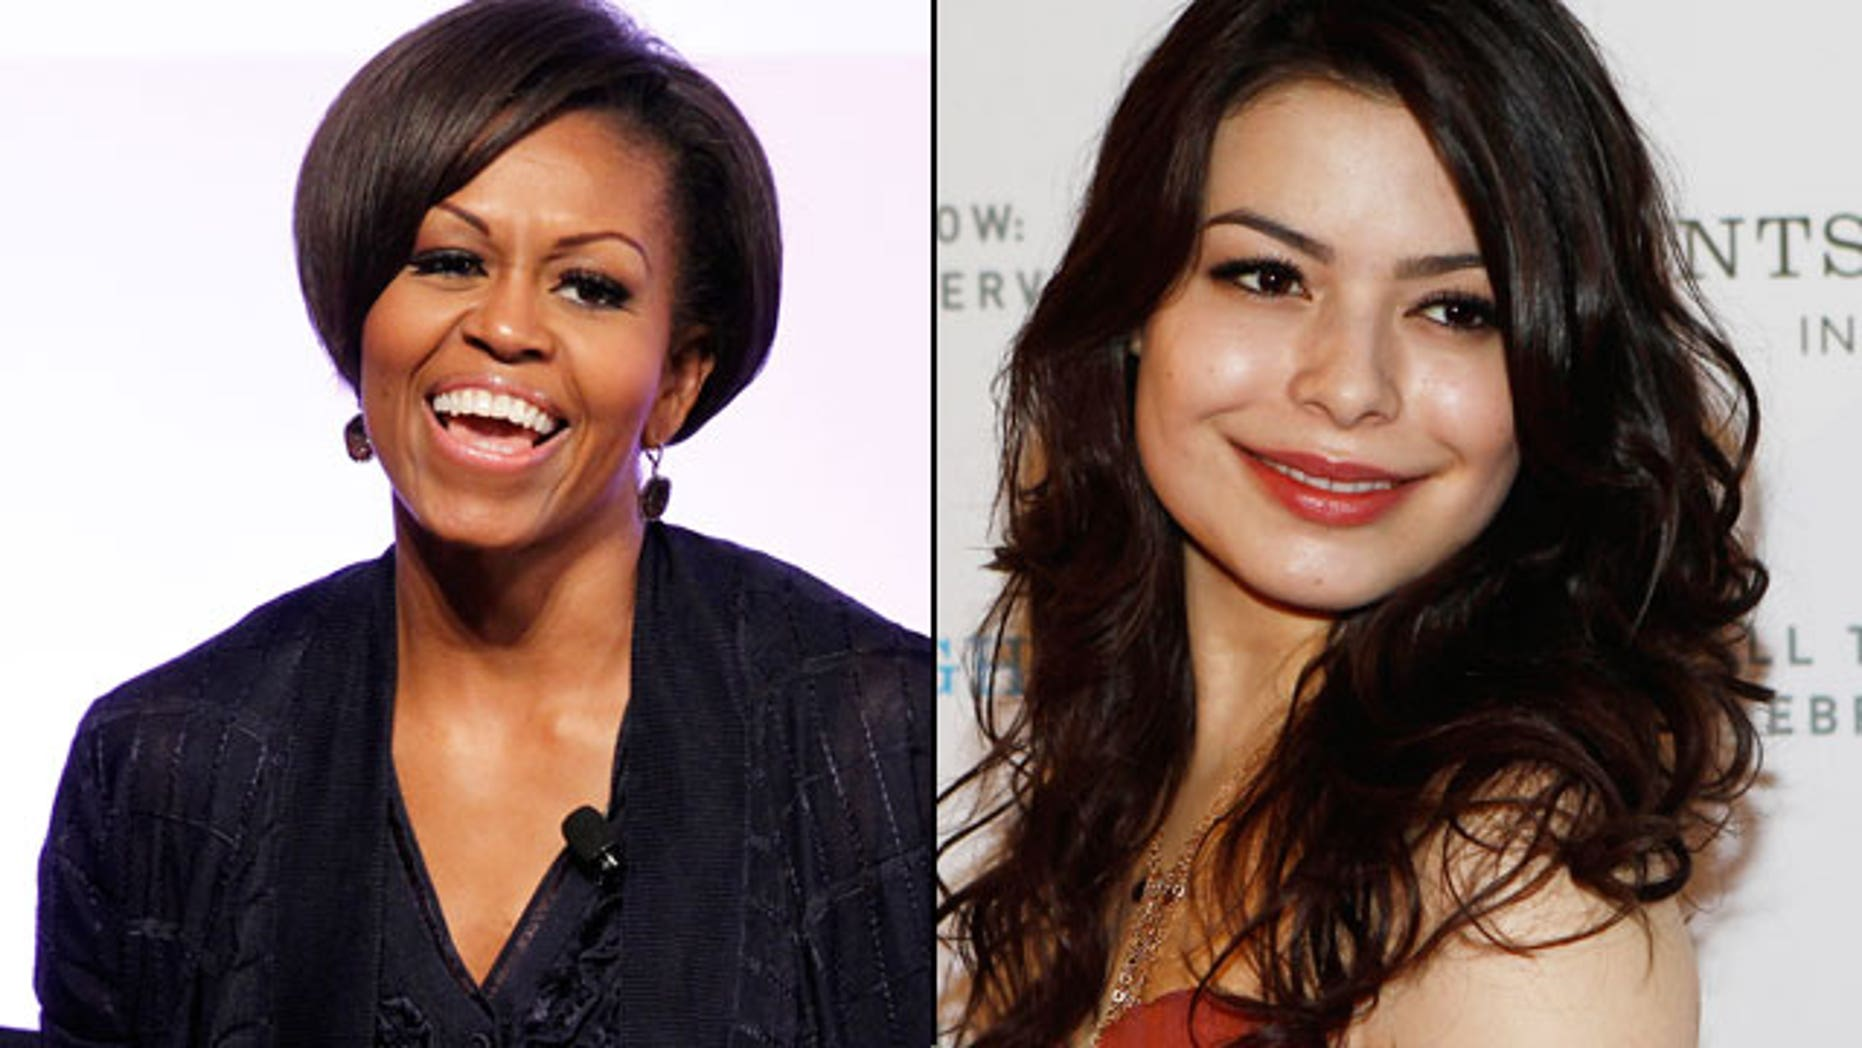 First lady Michelle Obama (left) will guest star on 'iCarly' with Miranda Cosgrove. (REUTERS)